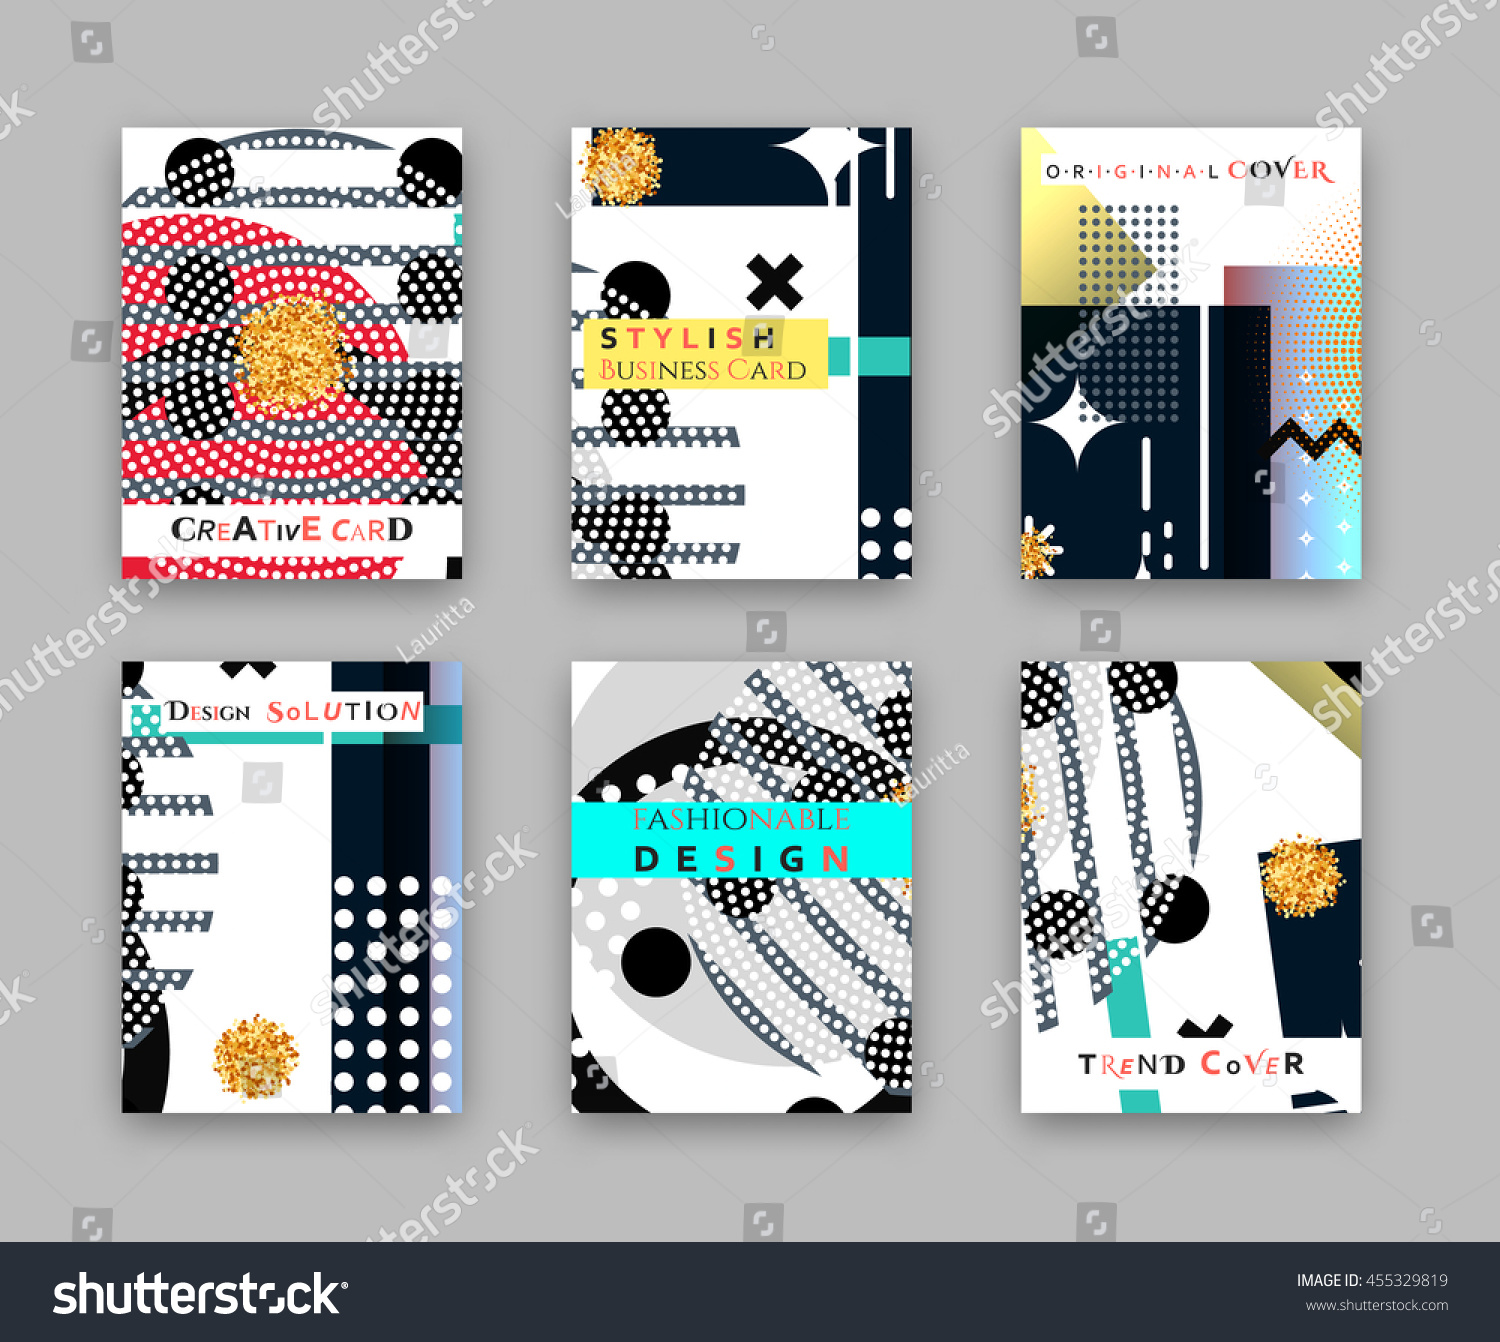 Fashionable Original Cover Stylish Business Card Stock Vector ...